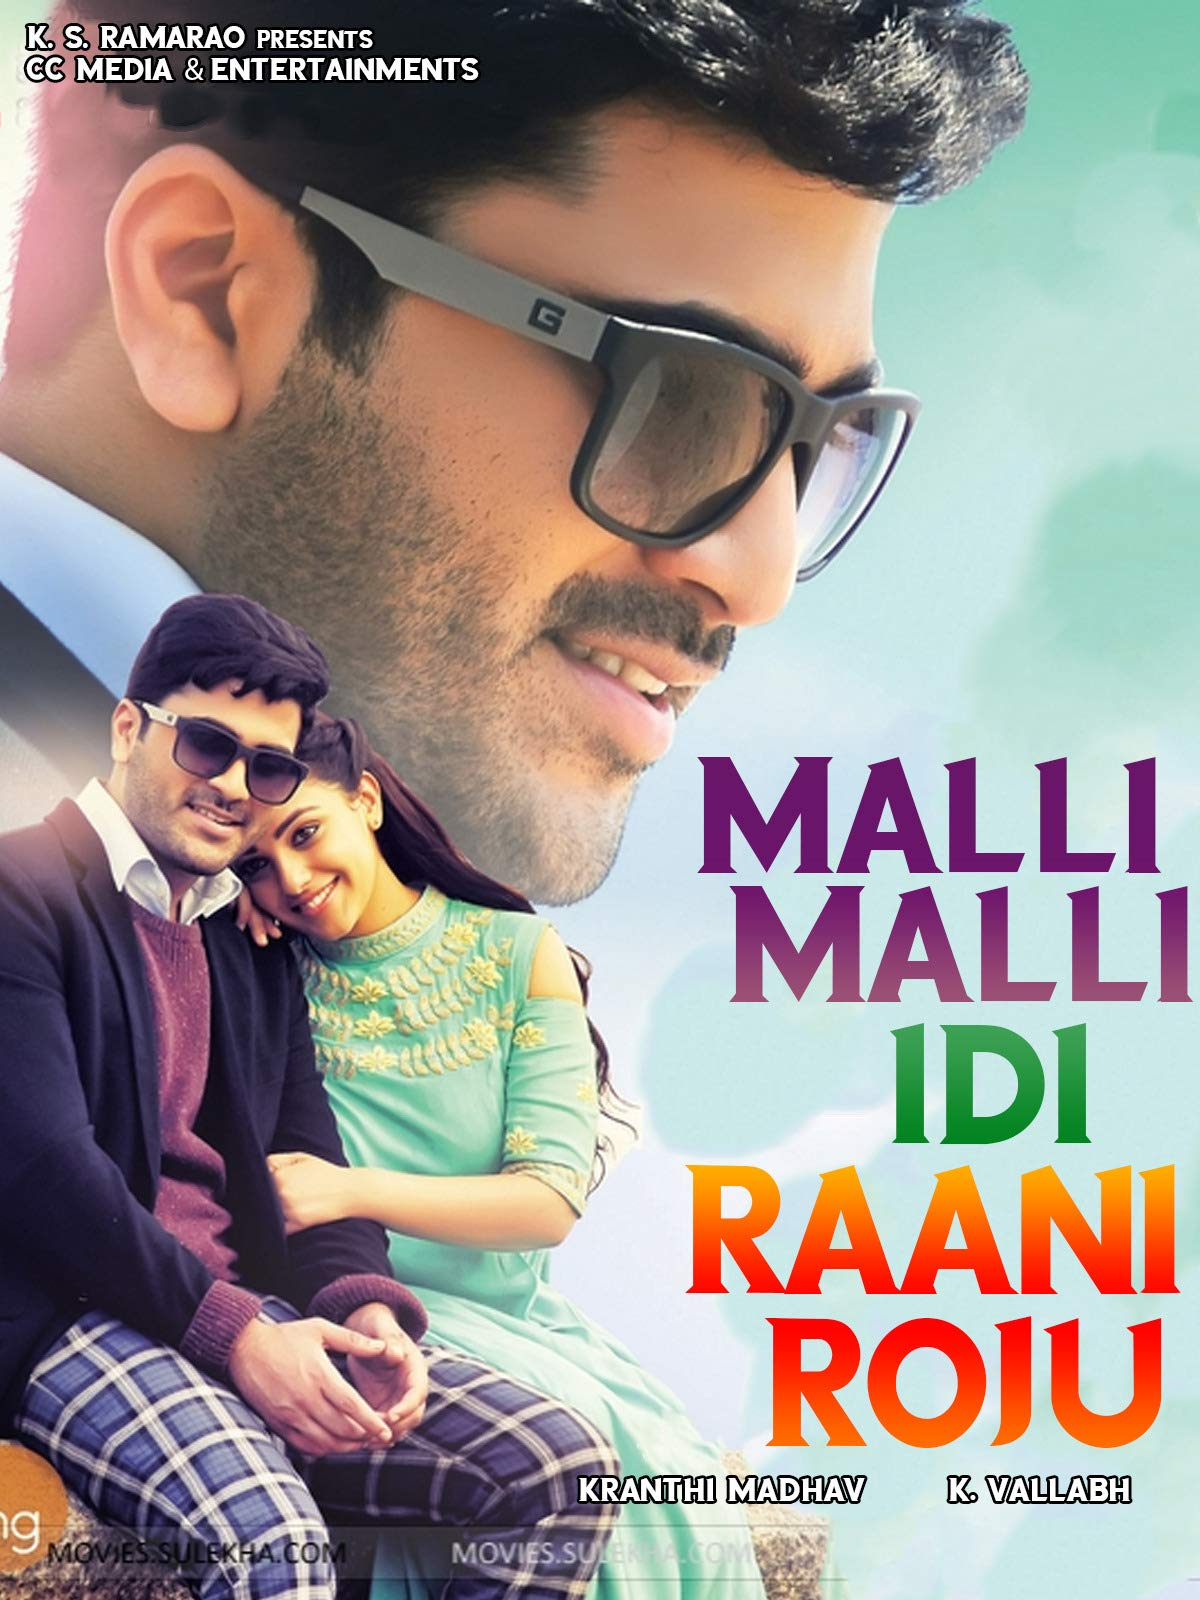 Malli Malli Idi Rani Roju (Real Diljala) 2015 Hindi Dual Audio 471MB UNCUT HDRip Download